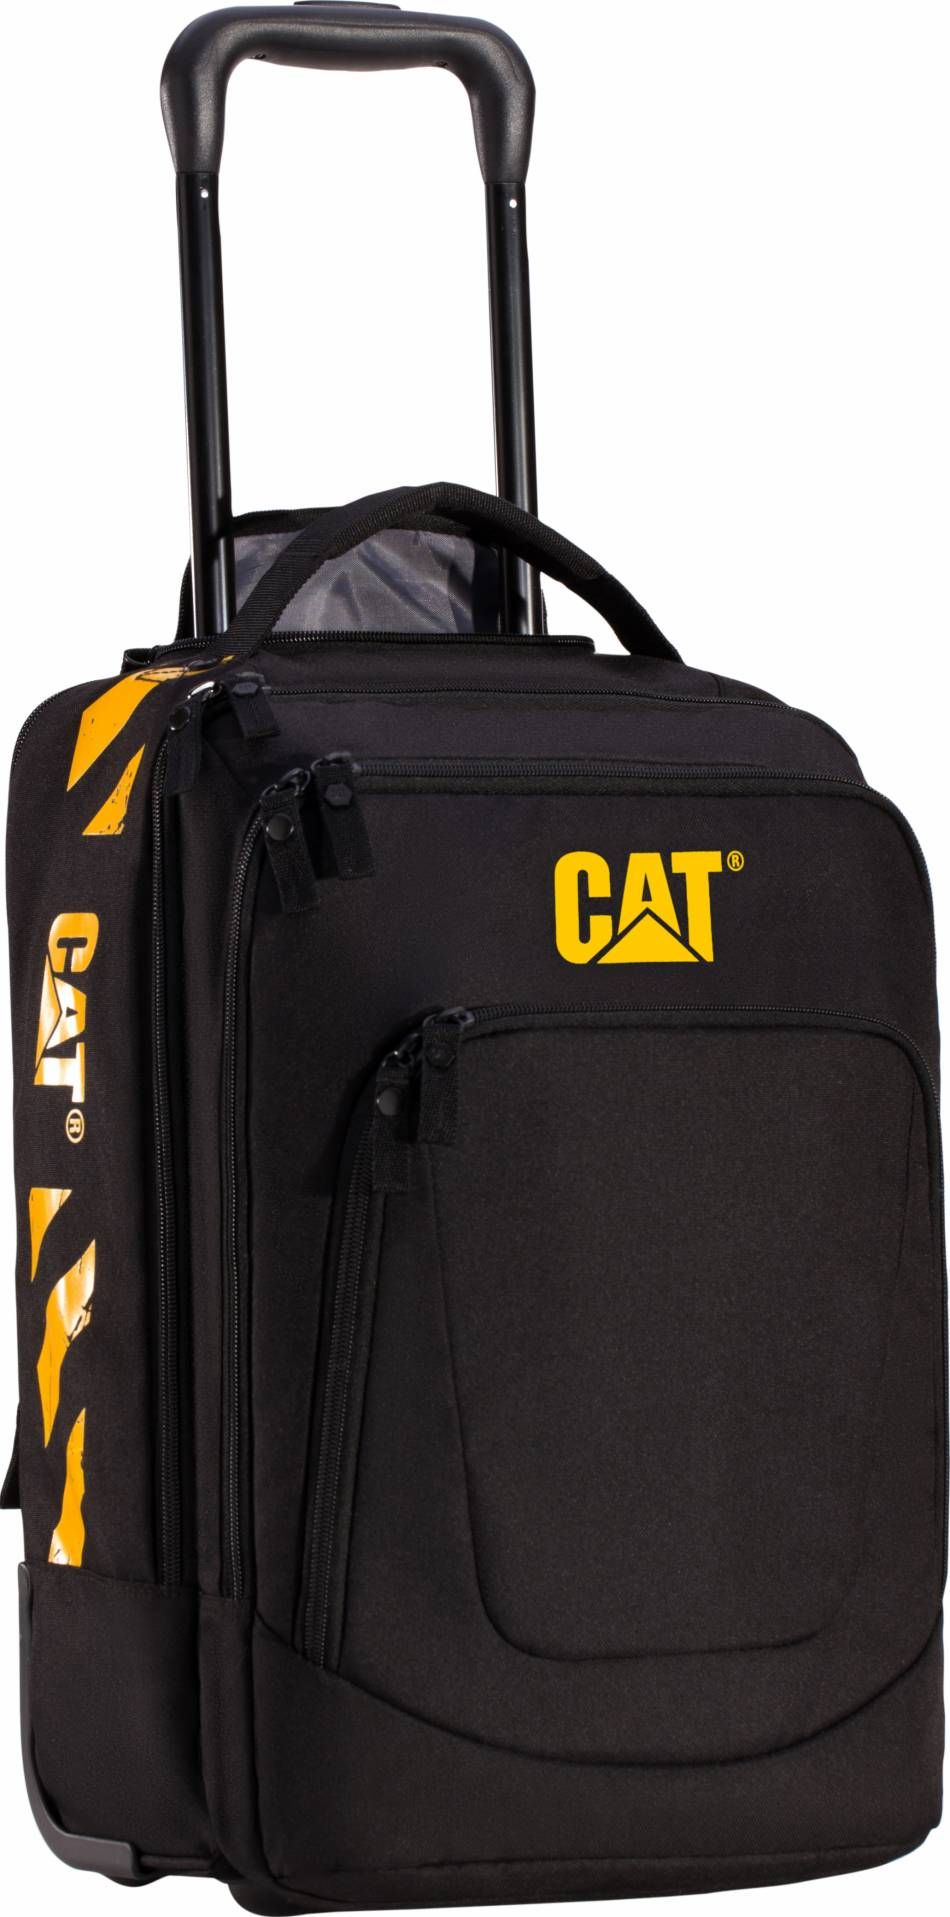 e80f3343d3 Cat® Bags - Track Loader - Backpack Trolley